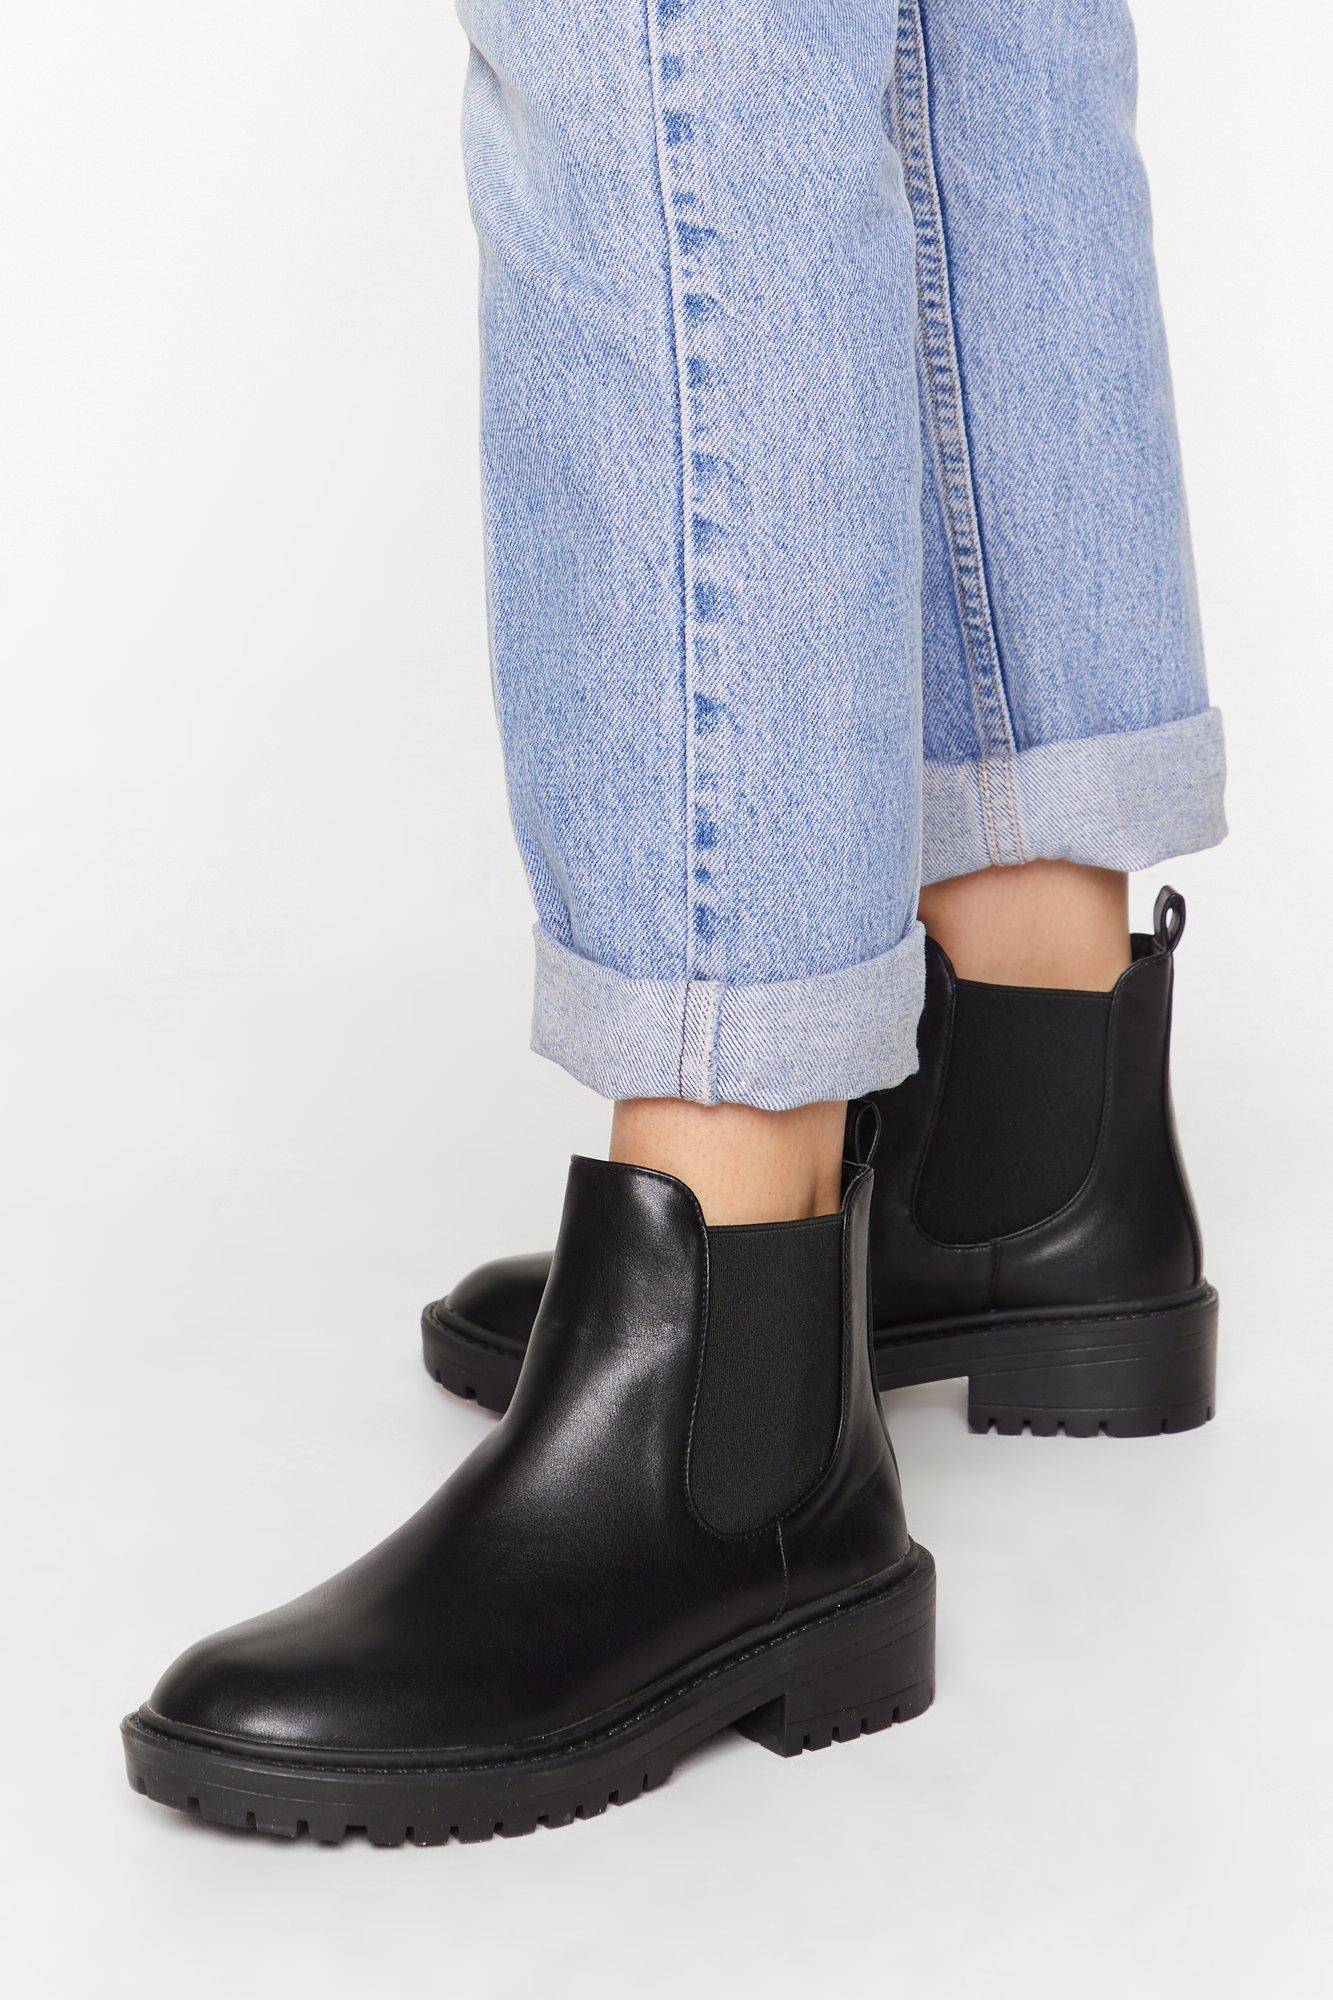 Image of Keepin' It Low-Key Faux Leather Cleated Boots